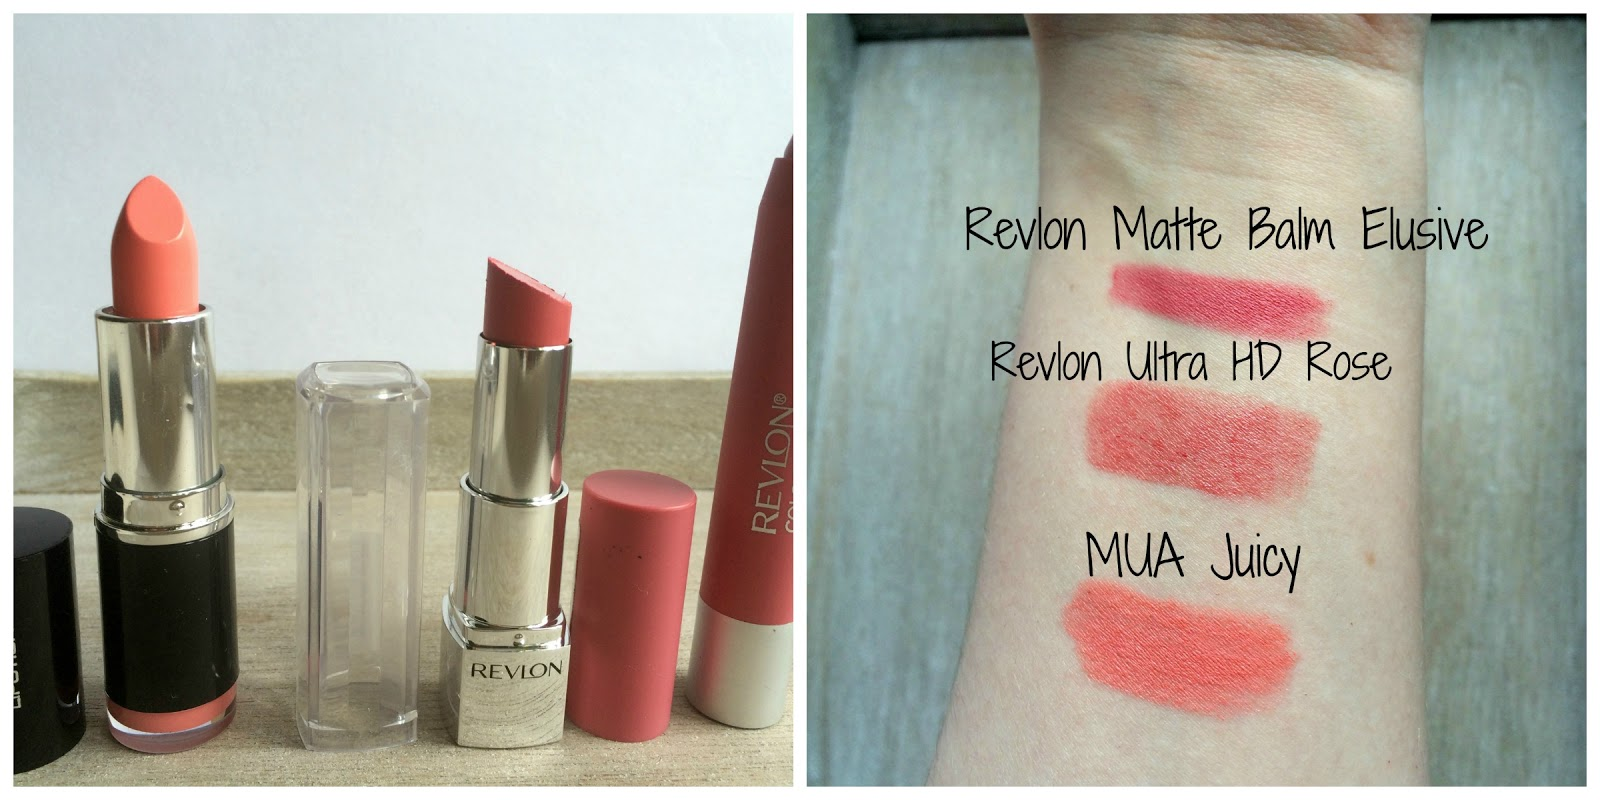 mua juicy revlon ultra hd rose matte elusive